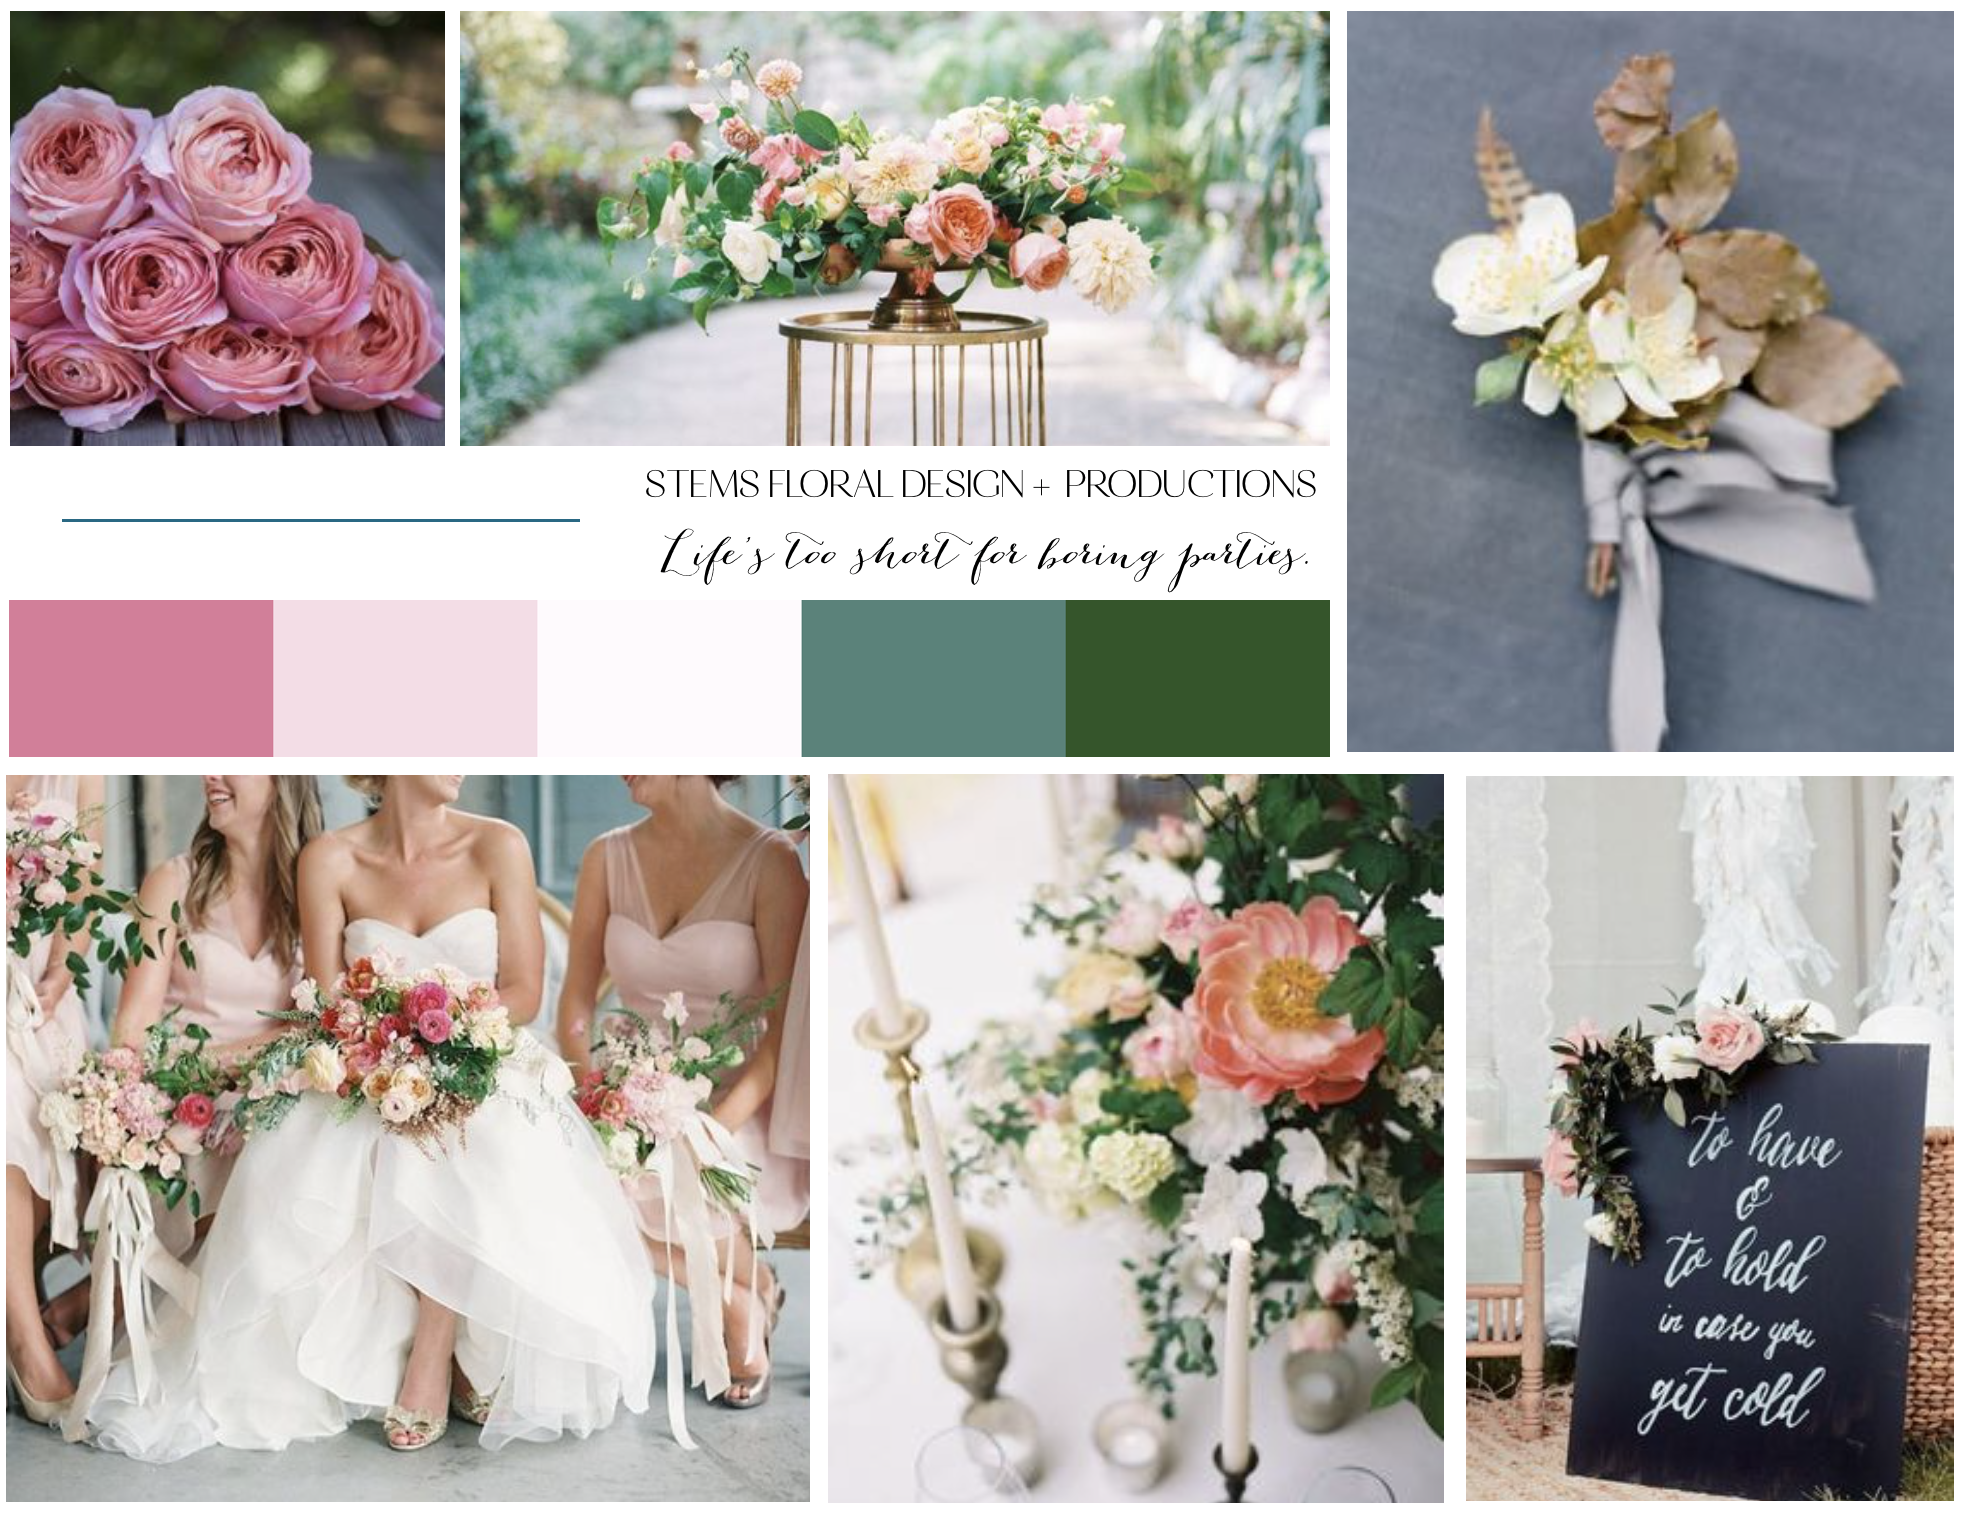 Wedding Inspiration Stems Fl Design Mood Board Vision Austin Florist